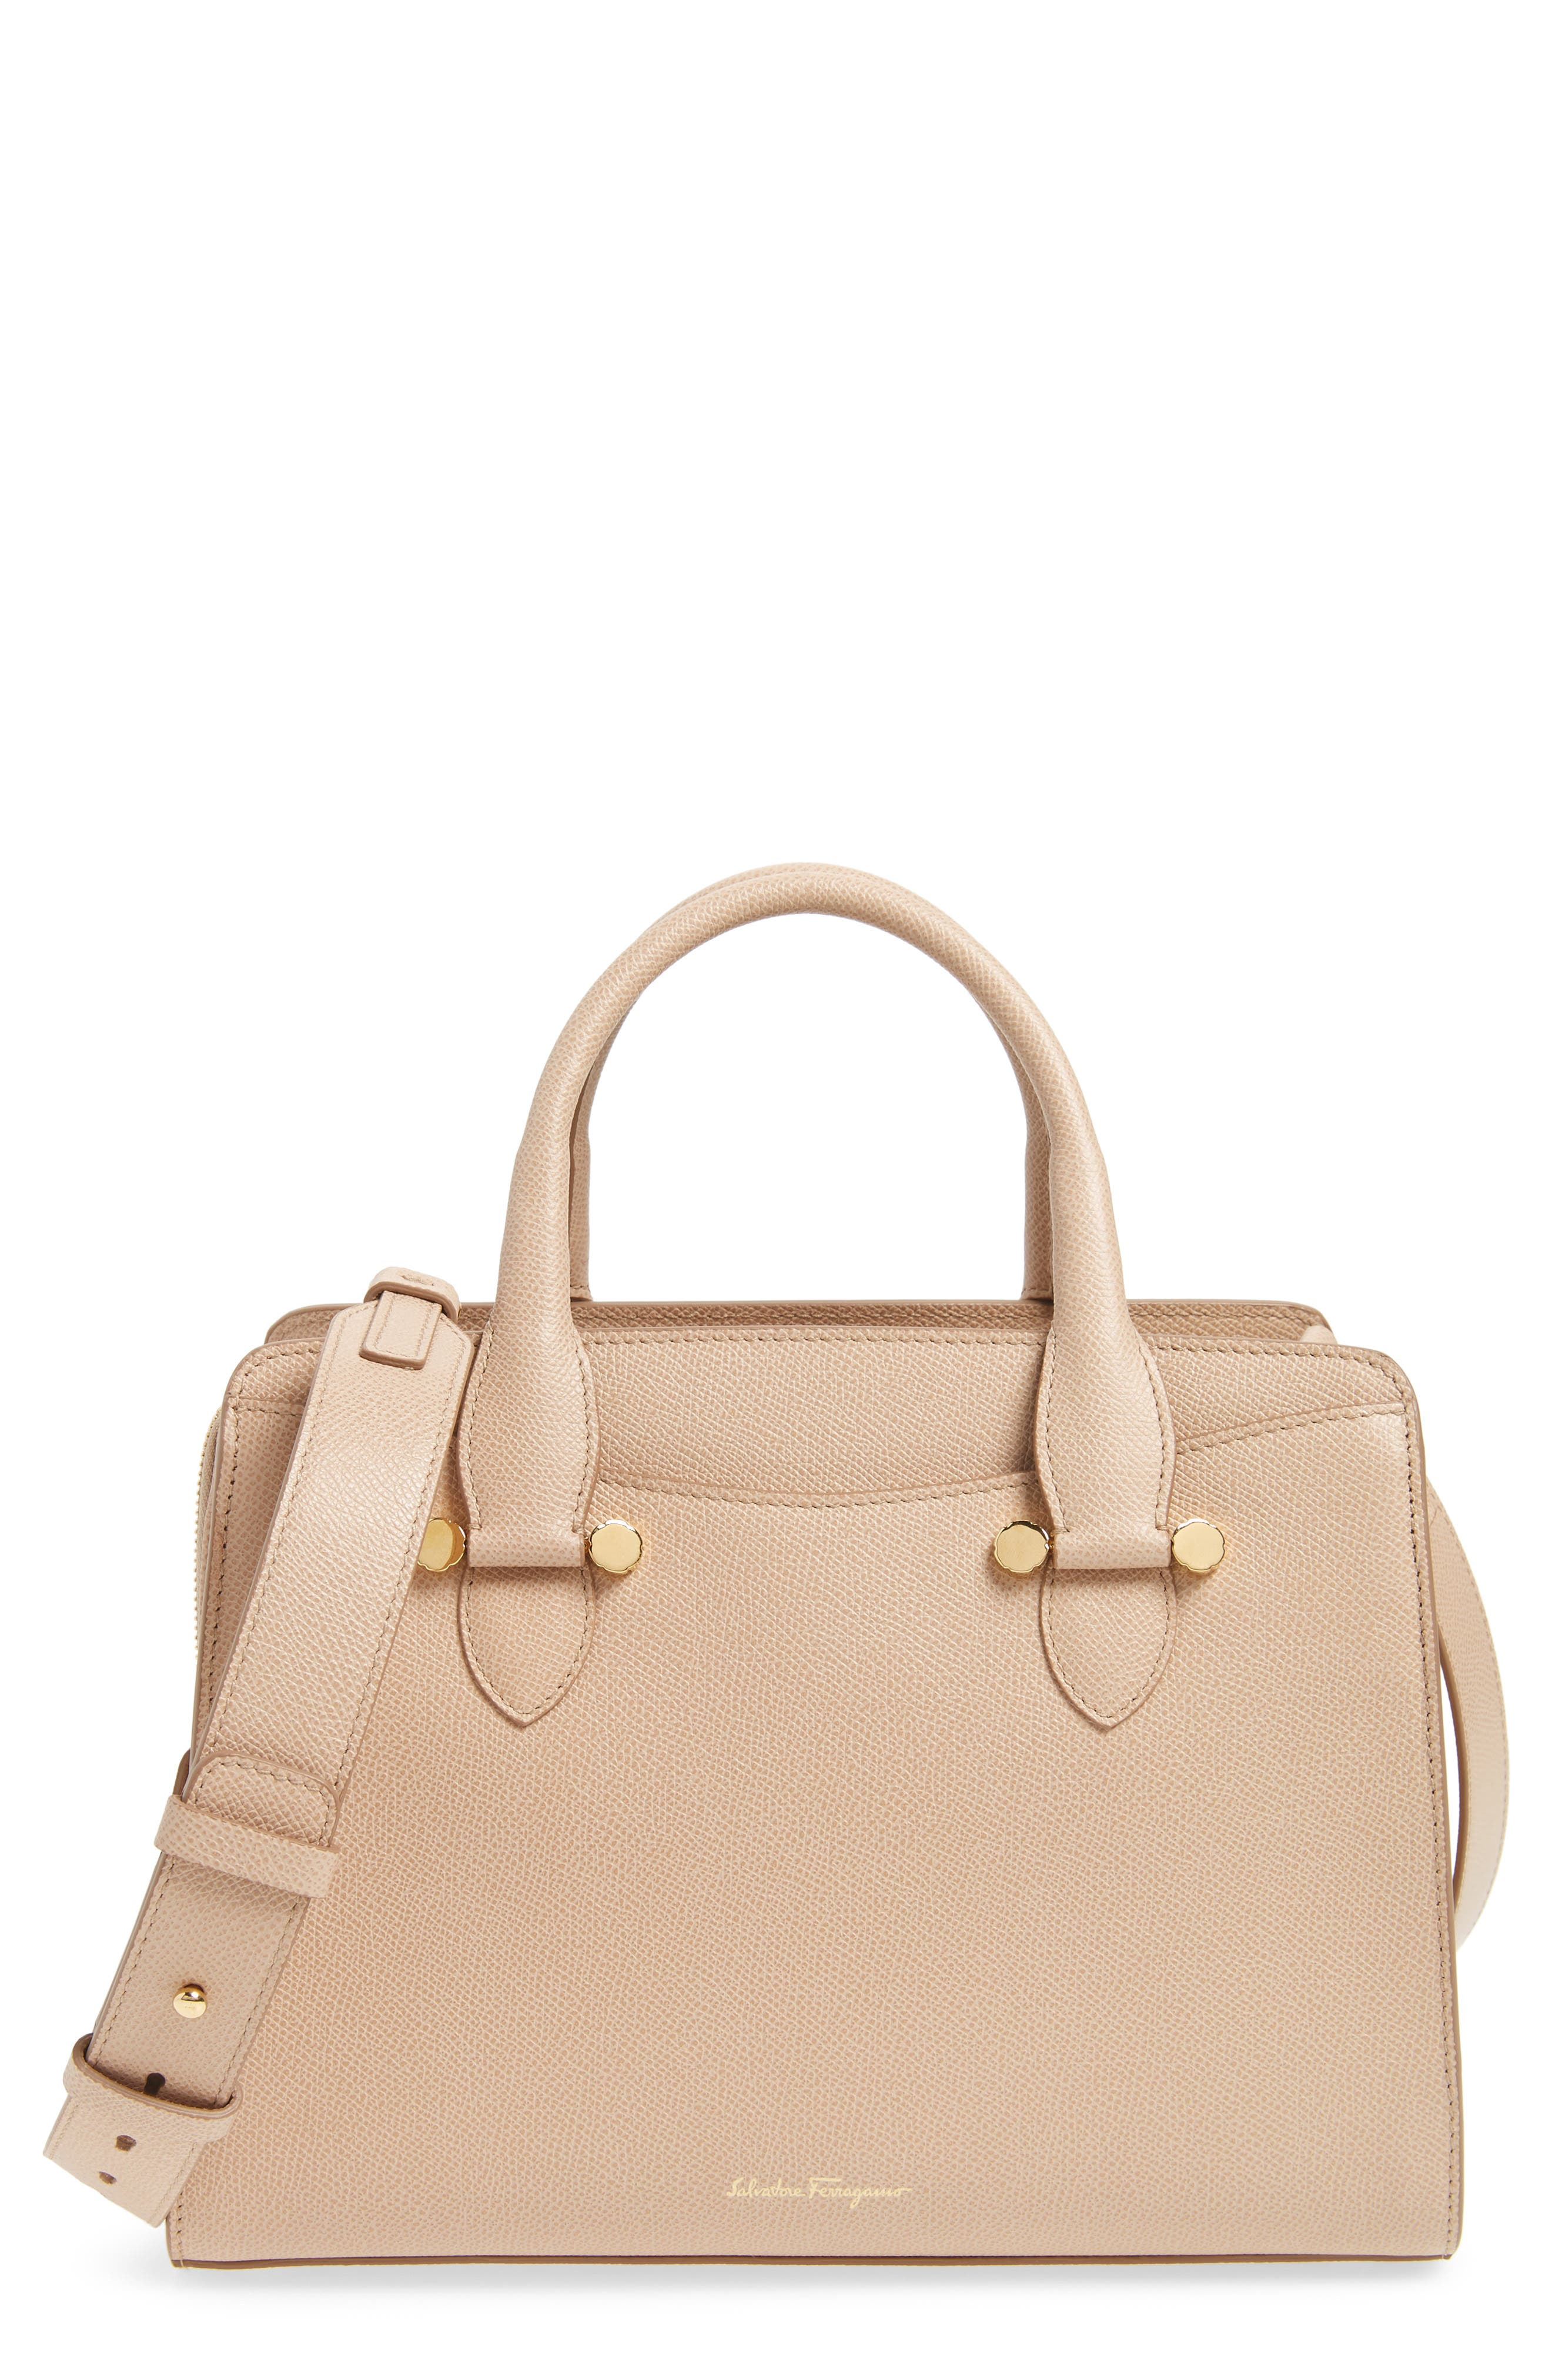 Small Today Leather Satchel,                             Main thumbnail 1, color,                             ALMOND/ SABLE